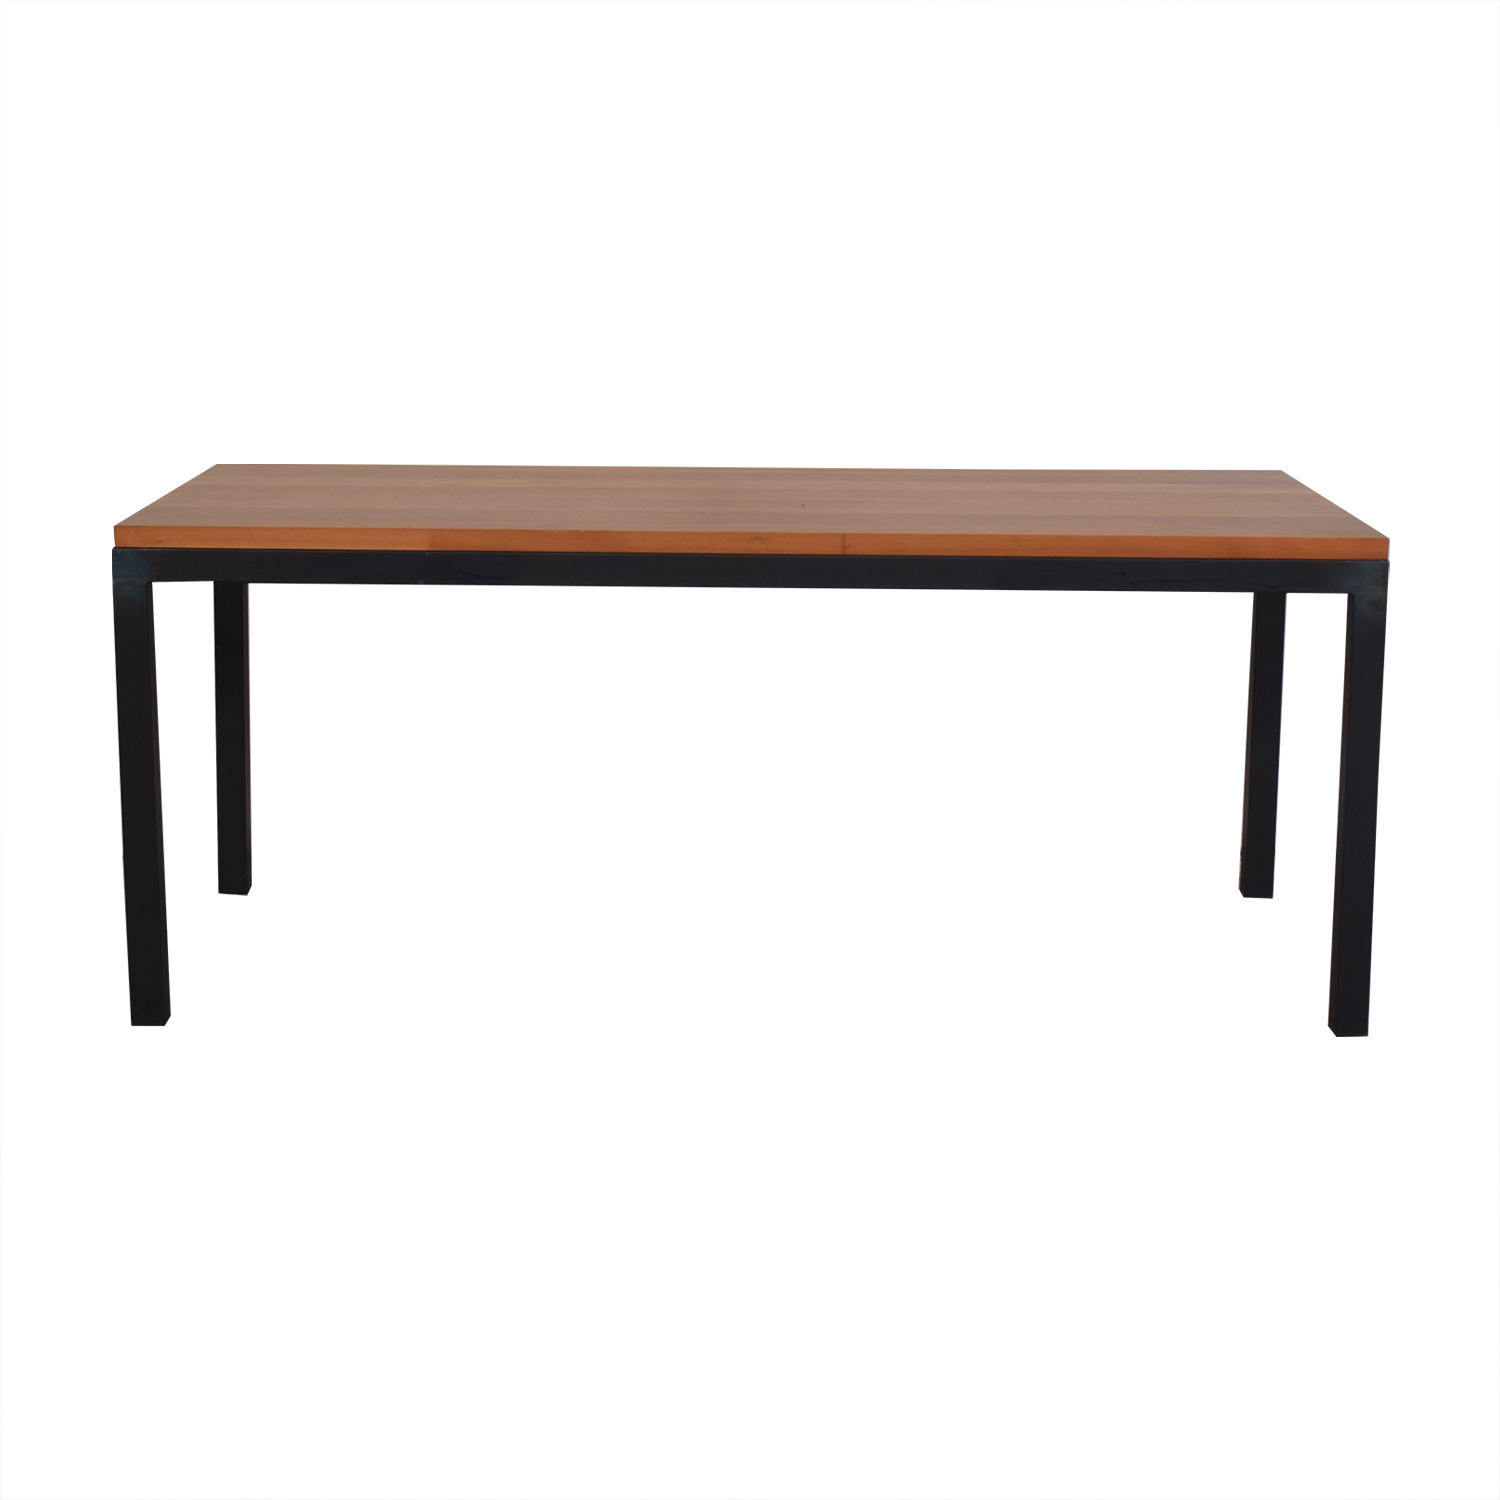 Room & Board Room & Board Parsons Desks for Benching Systems on sale